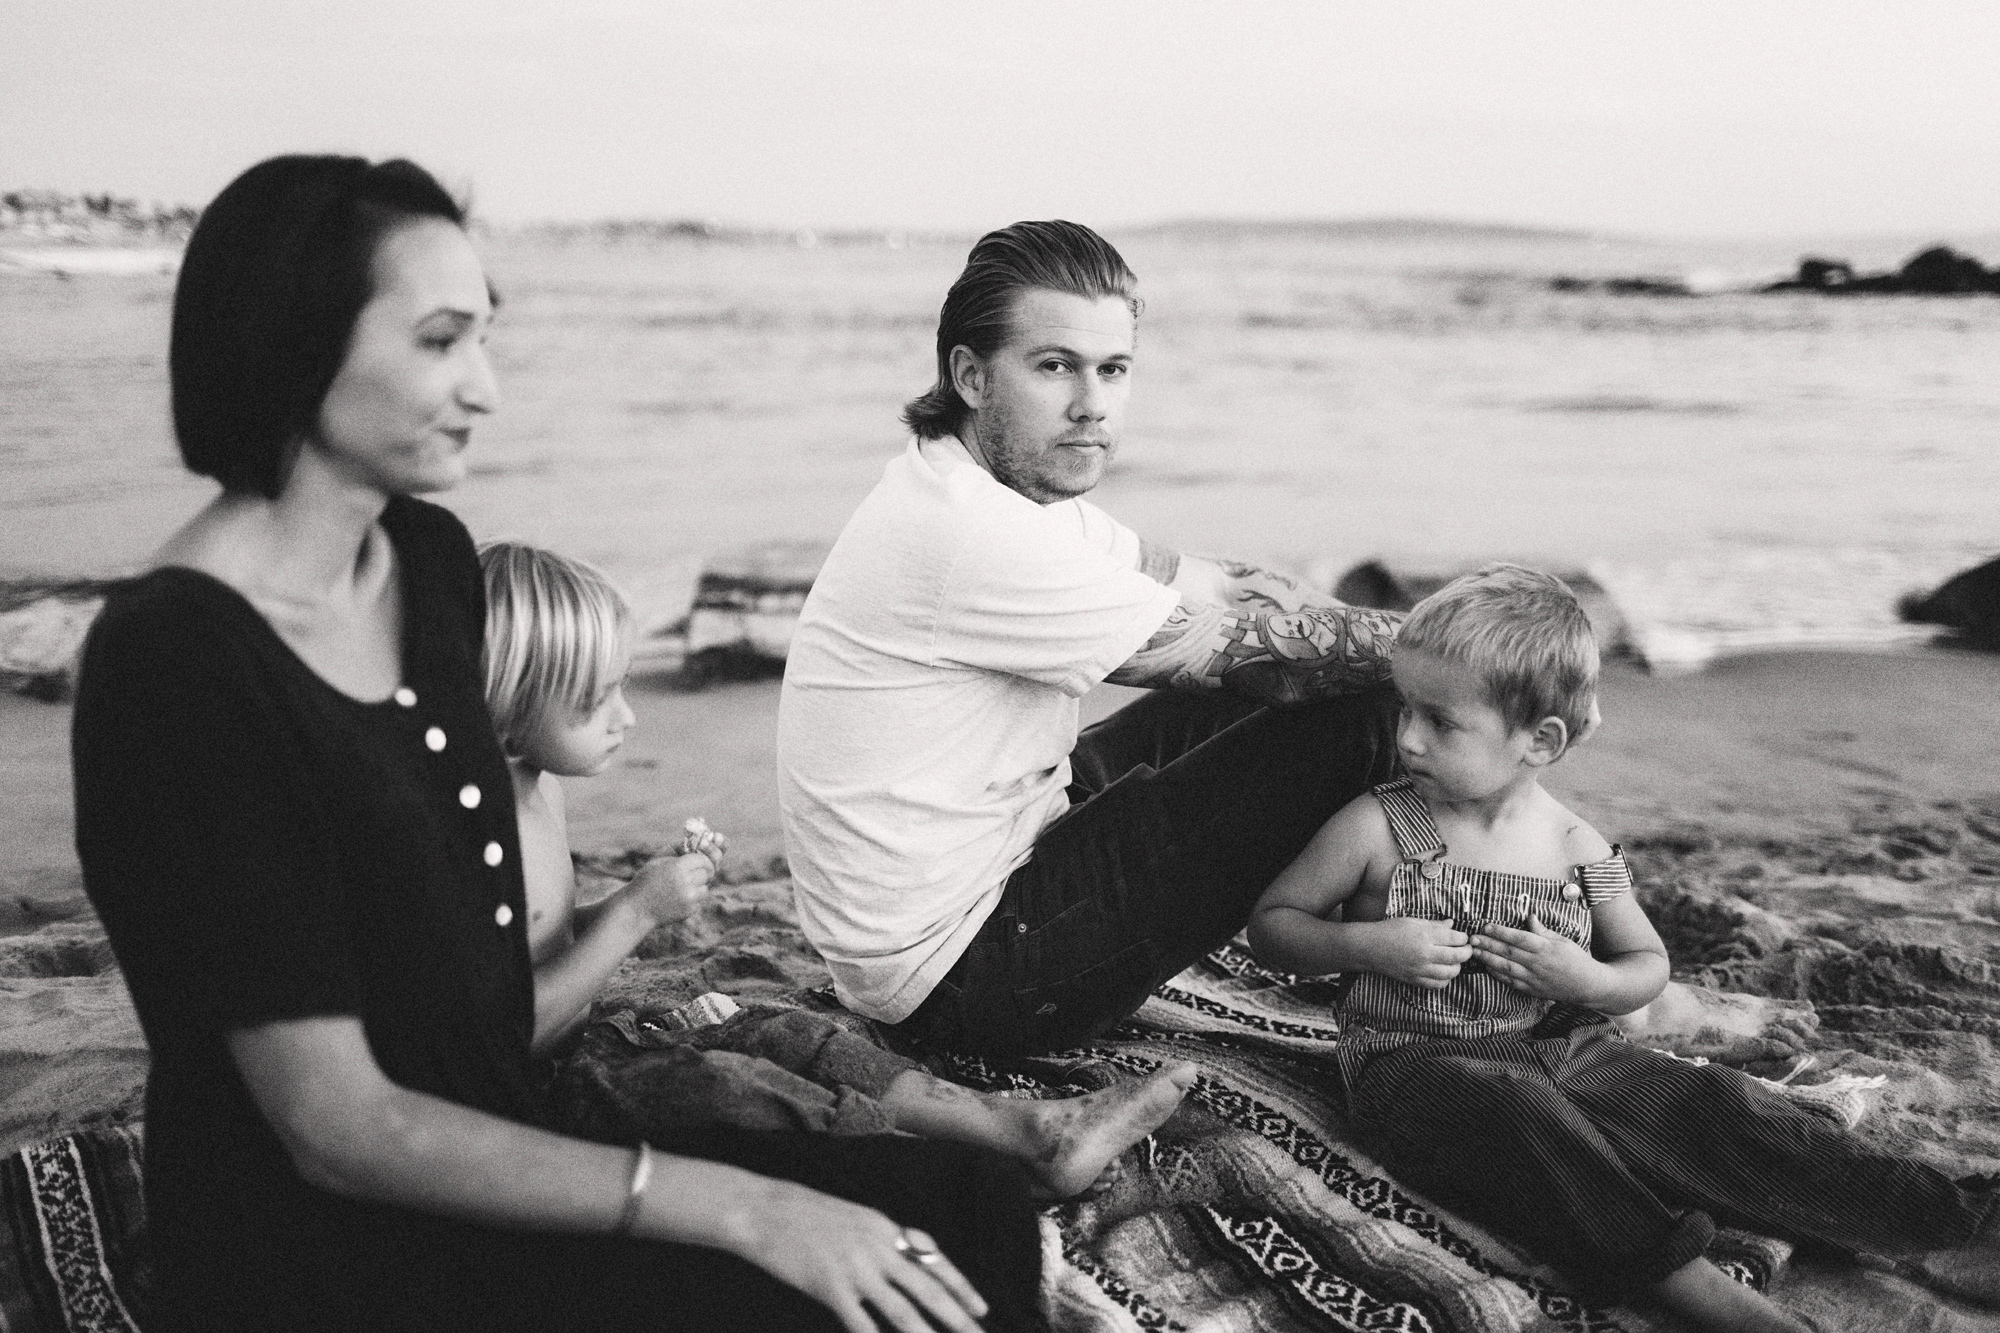 029-family-portrait--mattandtish--venice-beach.jpg